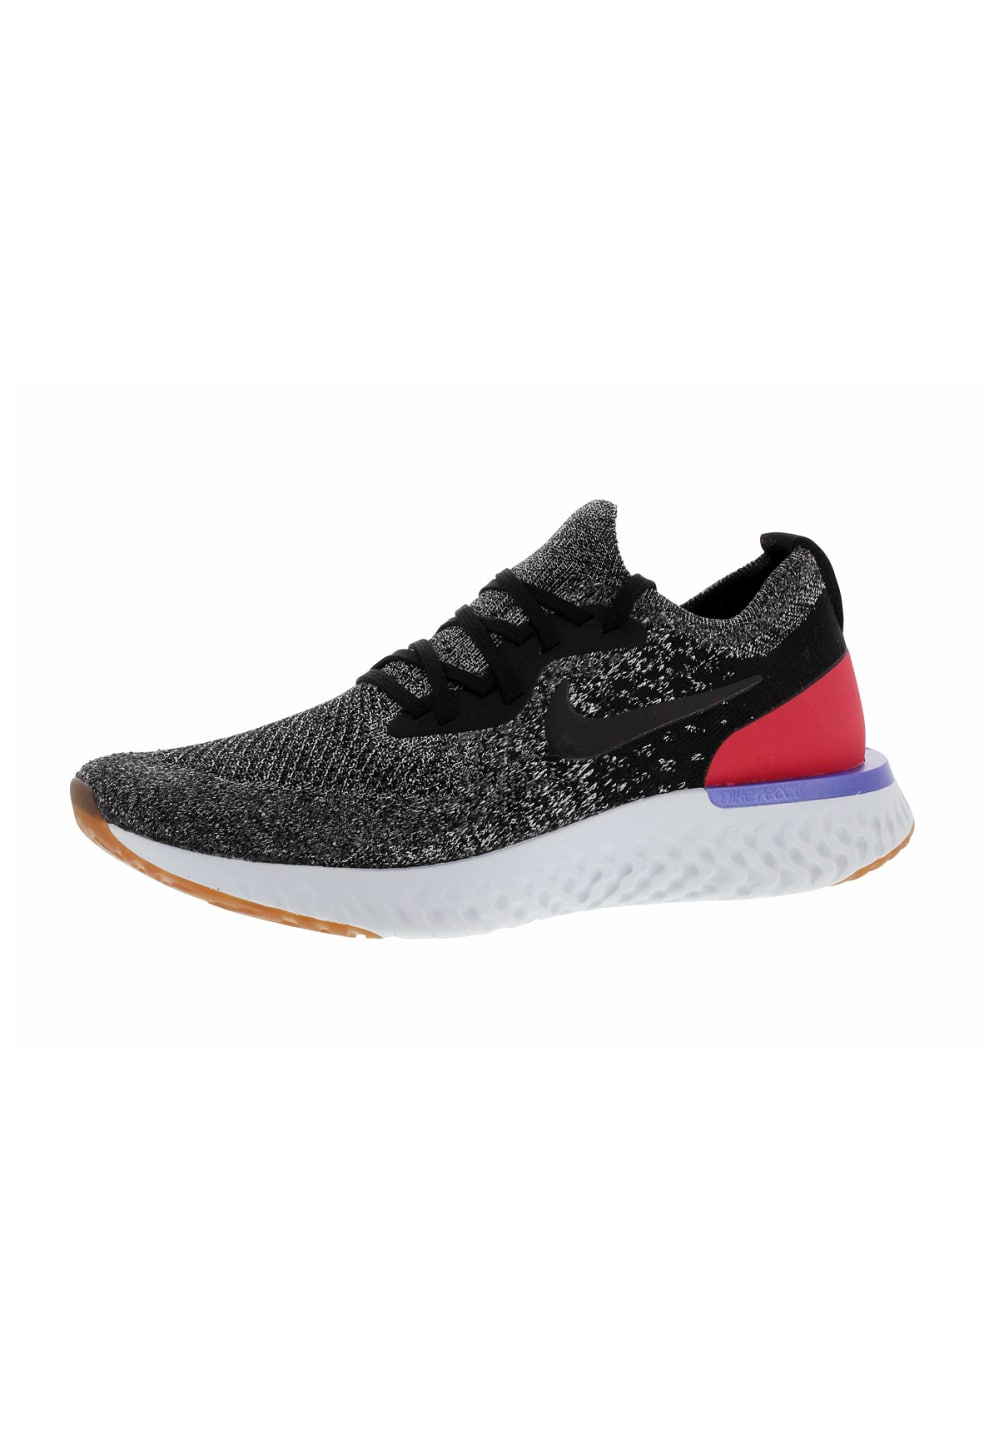 React Chaussures Flyknit Homme Running Pour Nike 21run Gris Epic qzv66H4